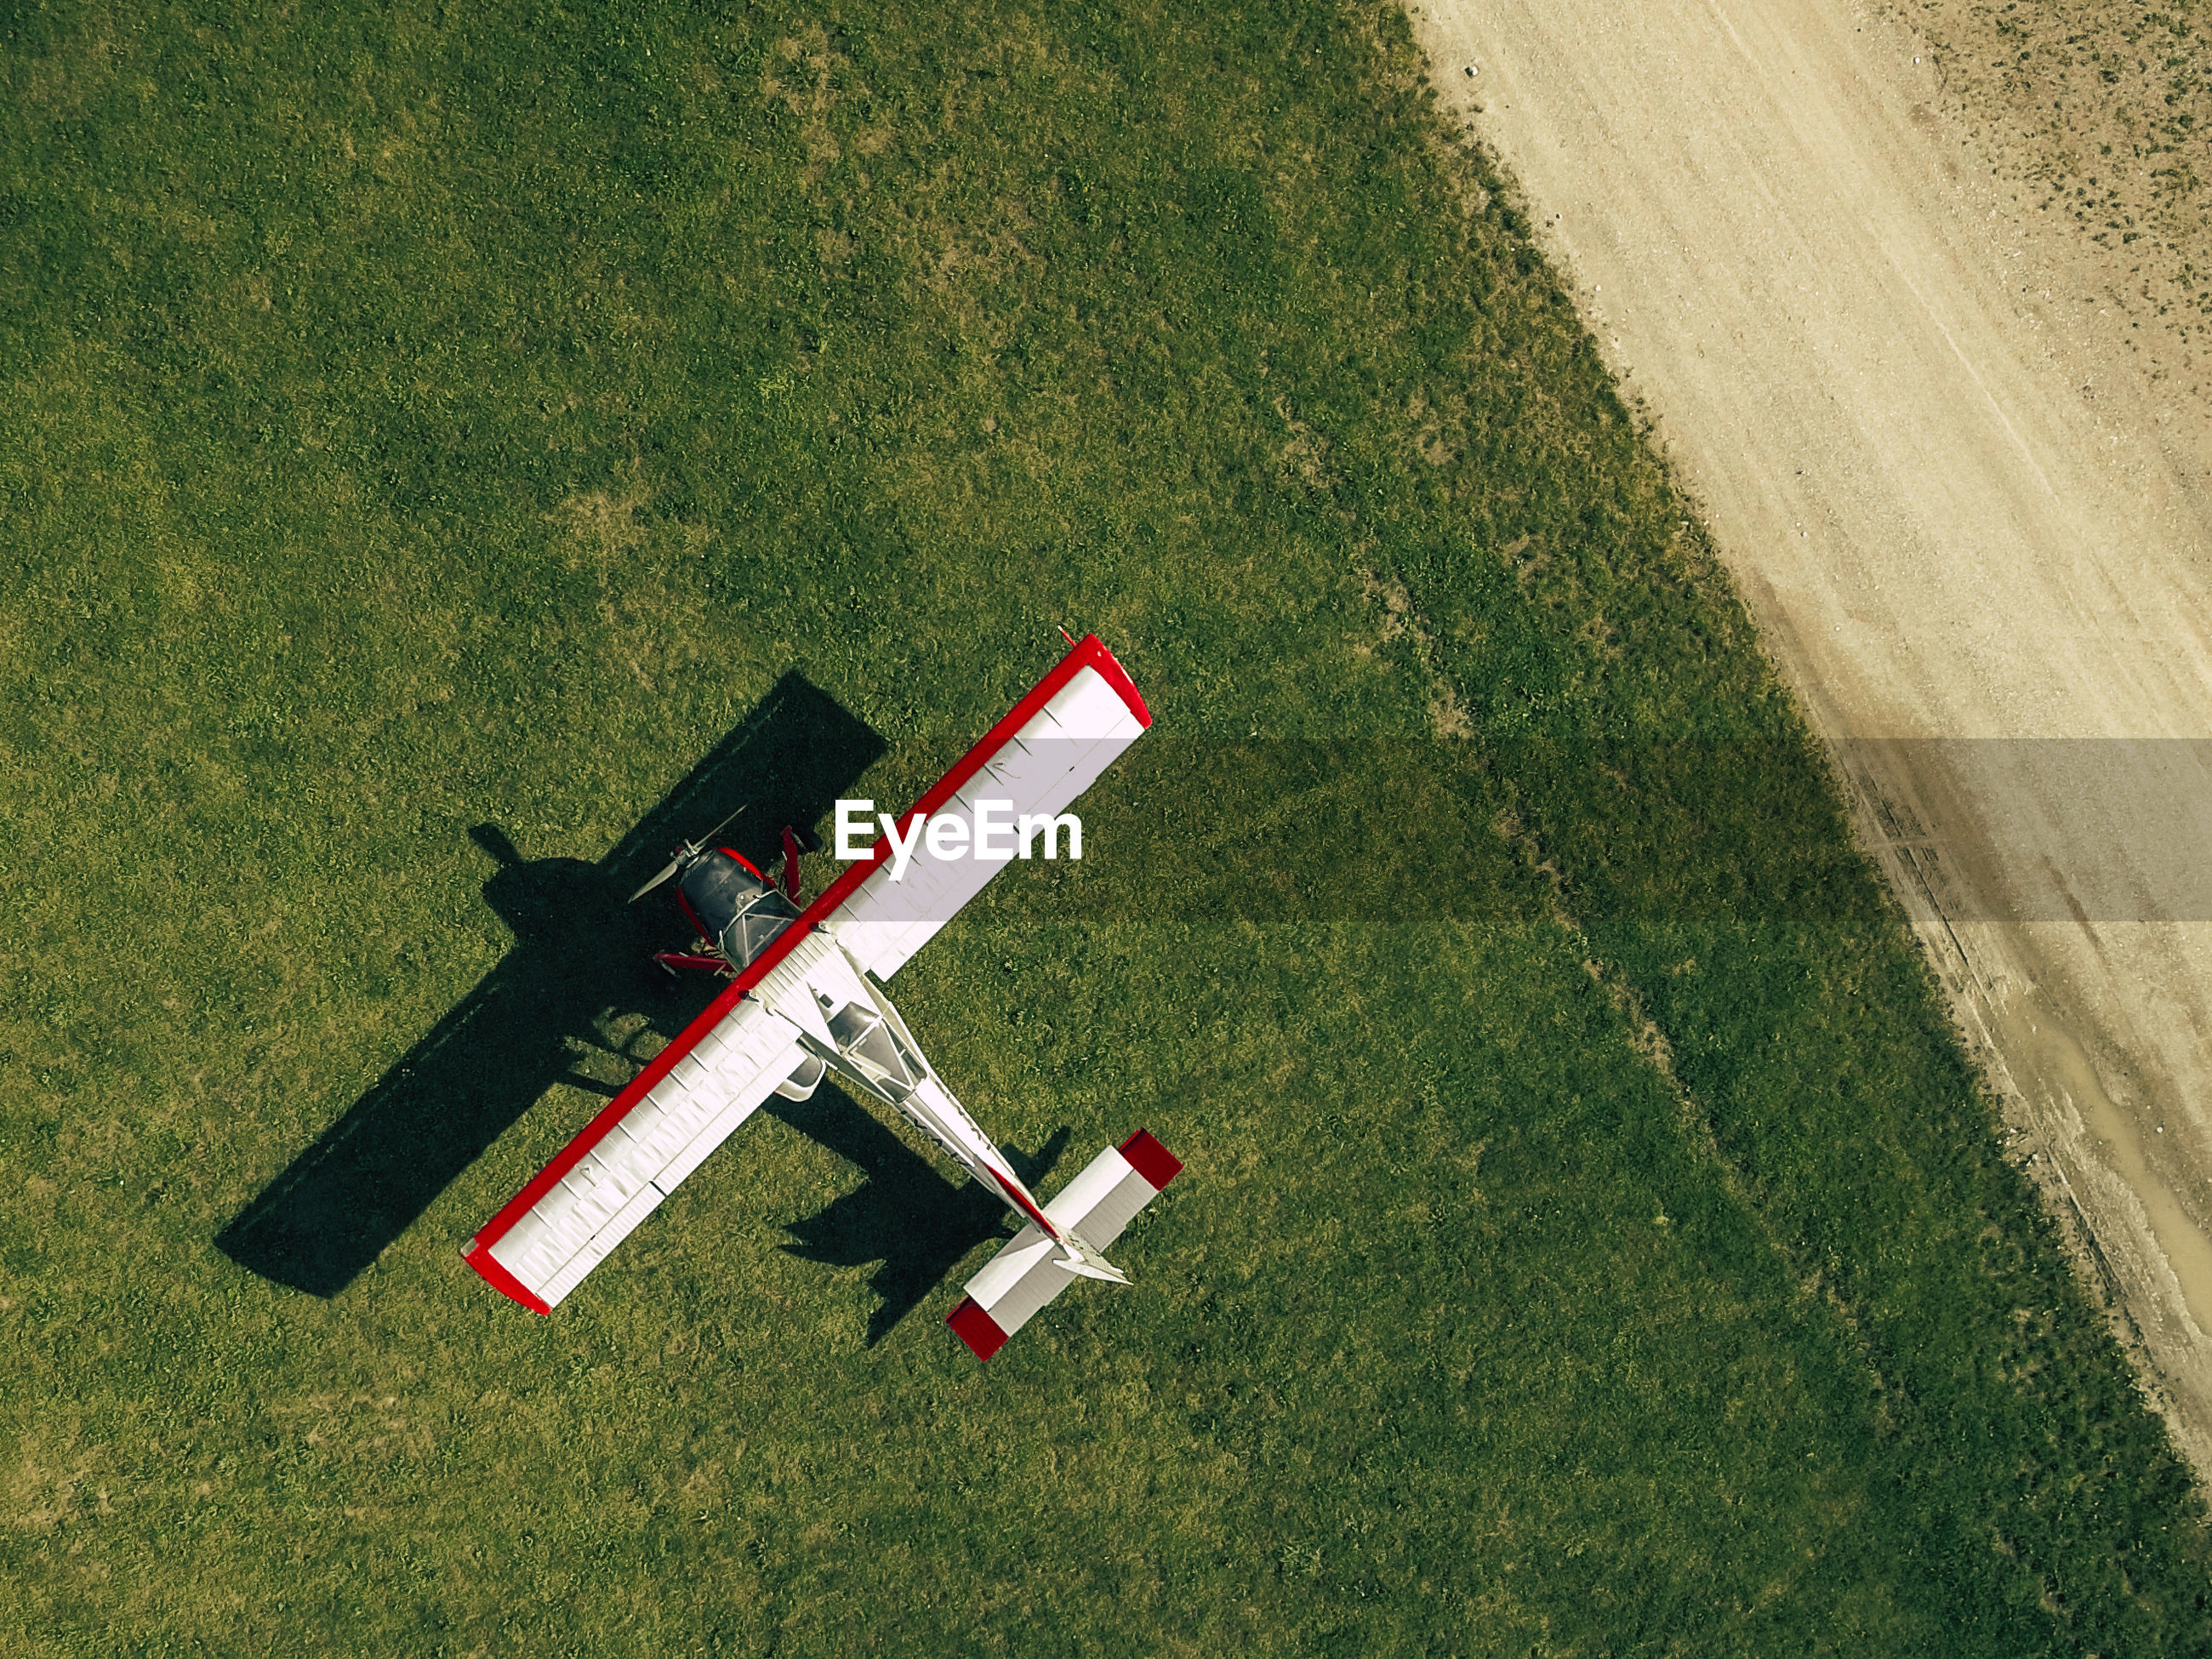 Directly above shot of biplane on grassy field